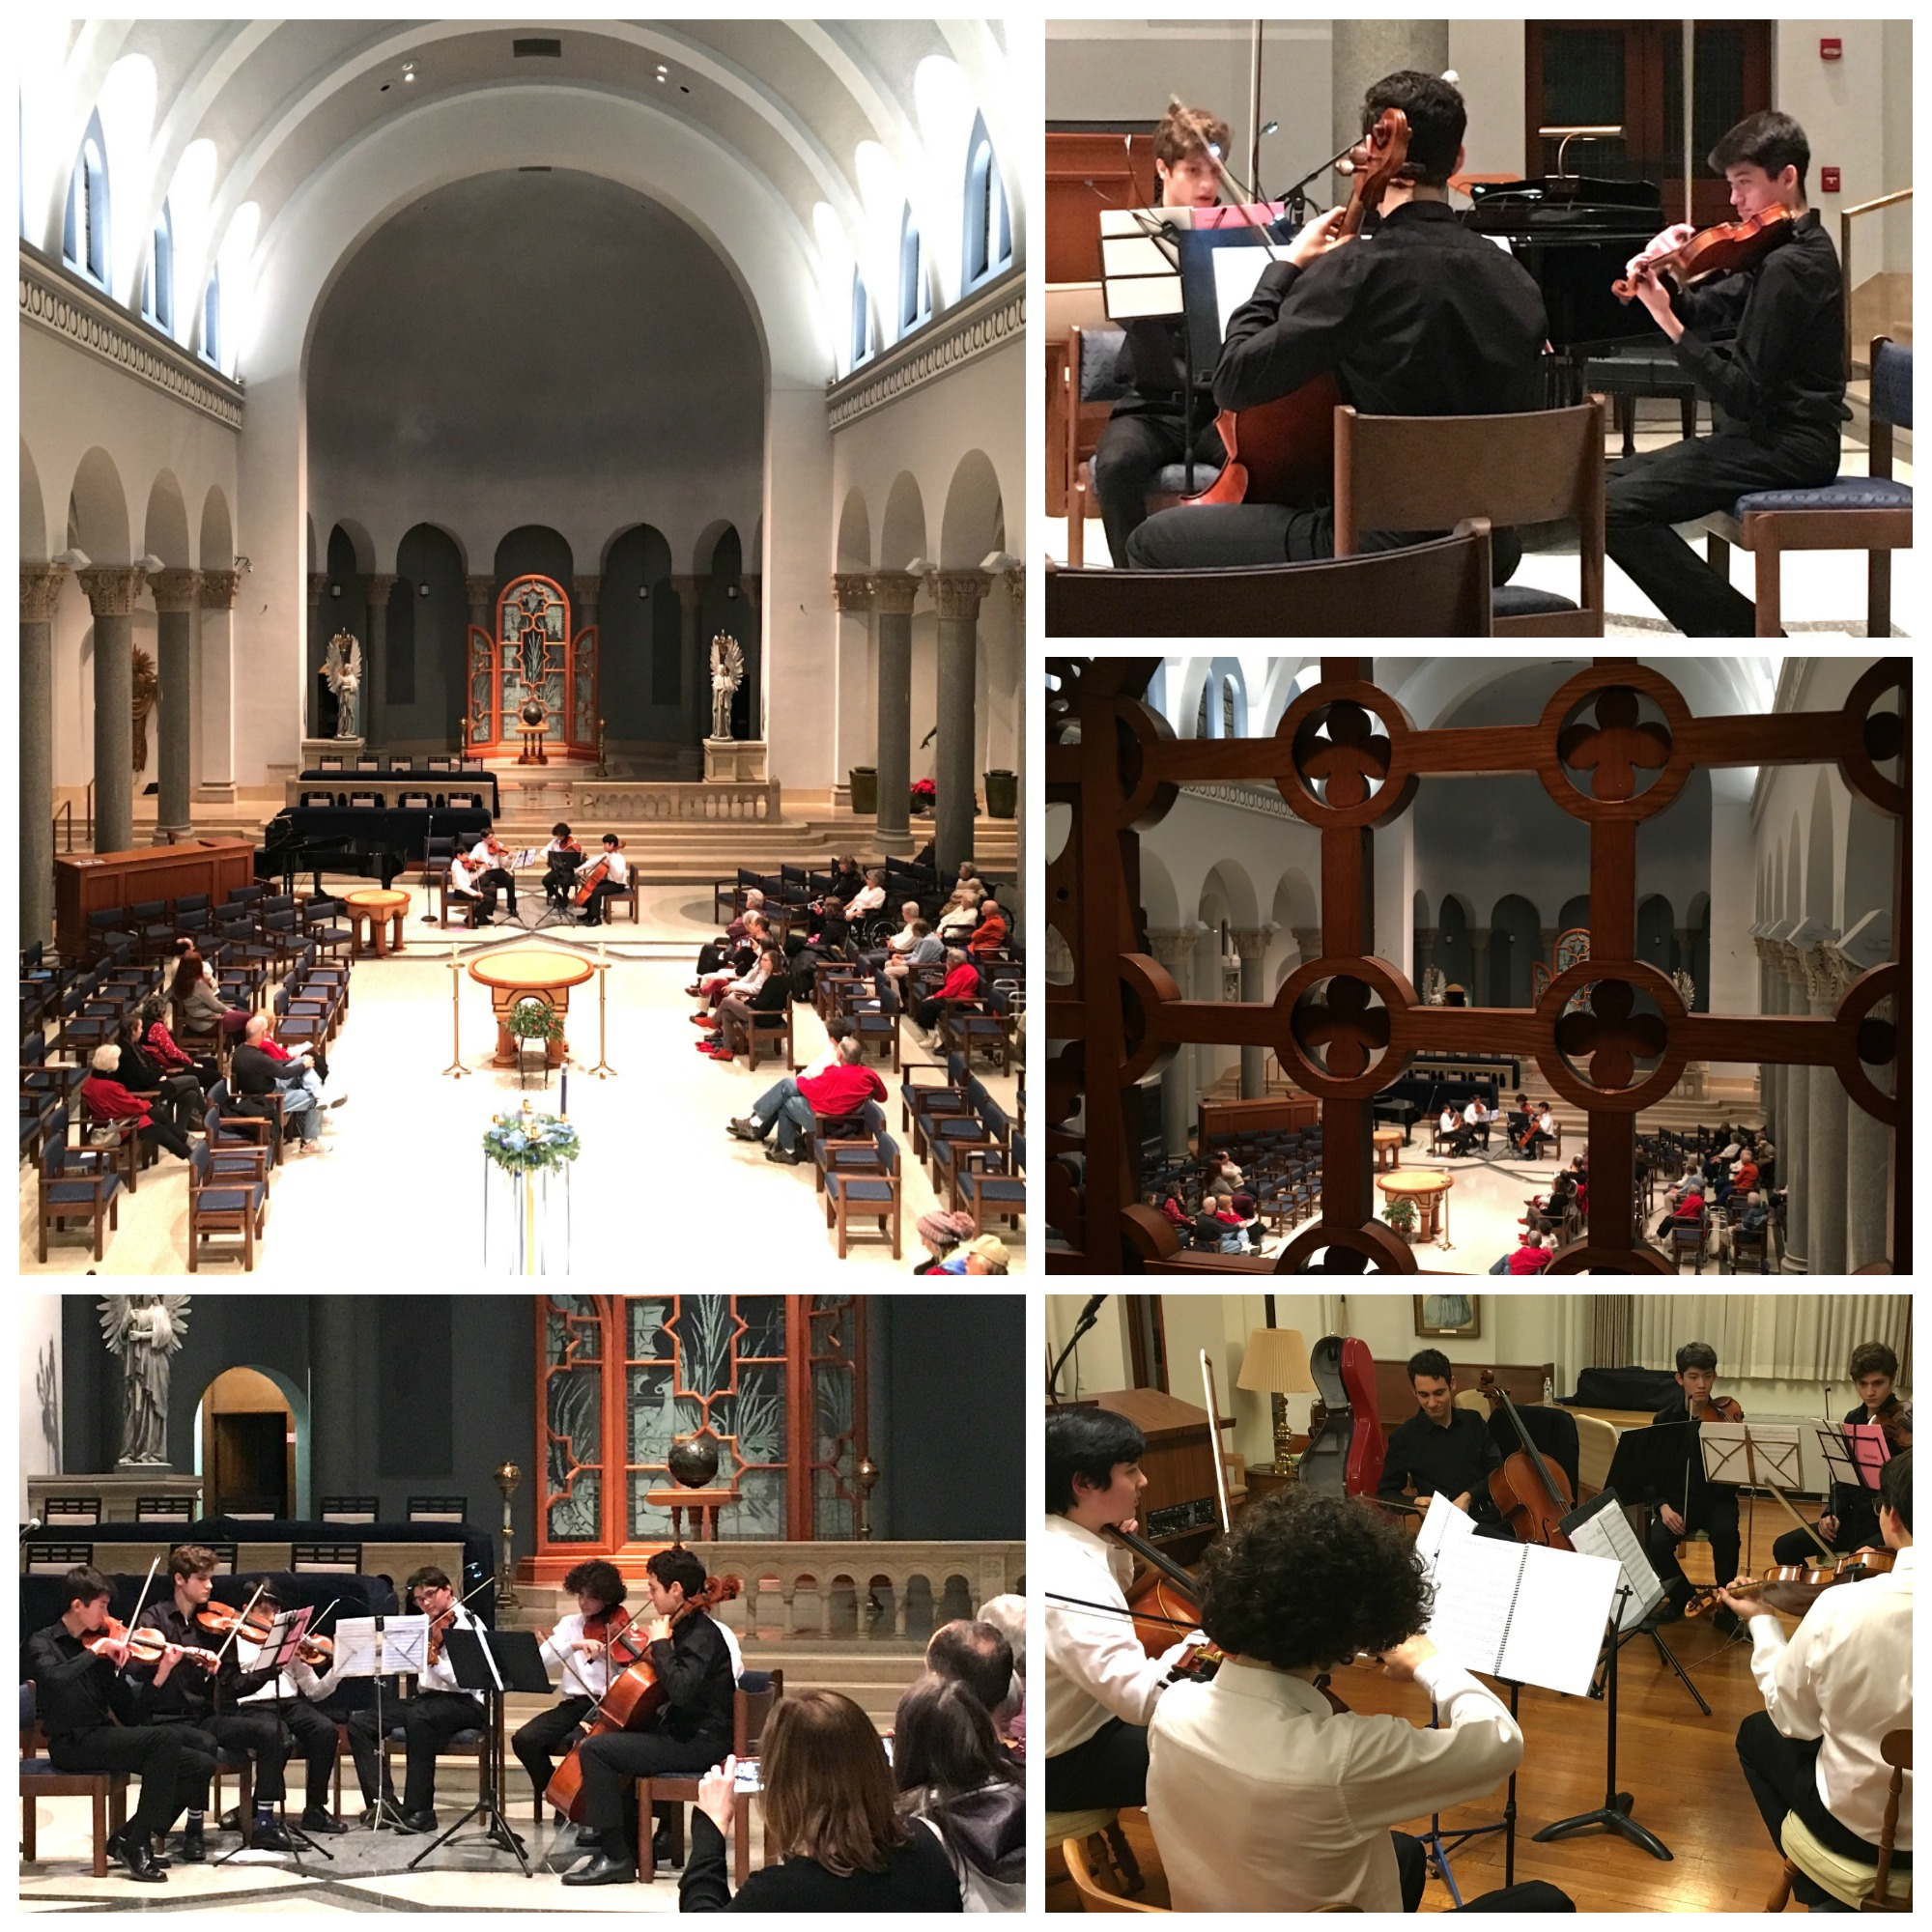 LaRoche College Festival of Lights - Friday, December 7, 2018 - Mercurial Trio and the UpBeat Quartet - Divine Providence Mother HouseHarry, Hector, Jonah, and Nick—the UpBeat Quartet—performed beautiful movements from the Mendelssohn and Borodin quartets, followed by the Mercurial Trio—Zach, Charlie, and Noah, playing classical music as well. All seven (including two sets of brothers) teamed up to play Chanukah and Christmas classics. The venue is the stunning Mother House at the Sisters of Divine Providence on the campus of LaRoche College.